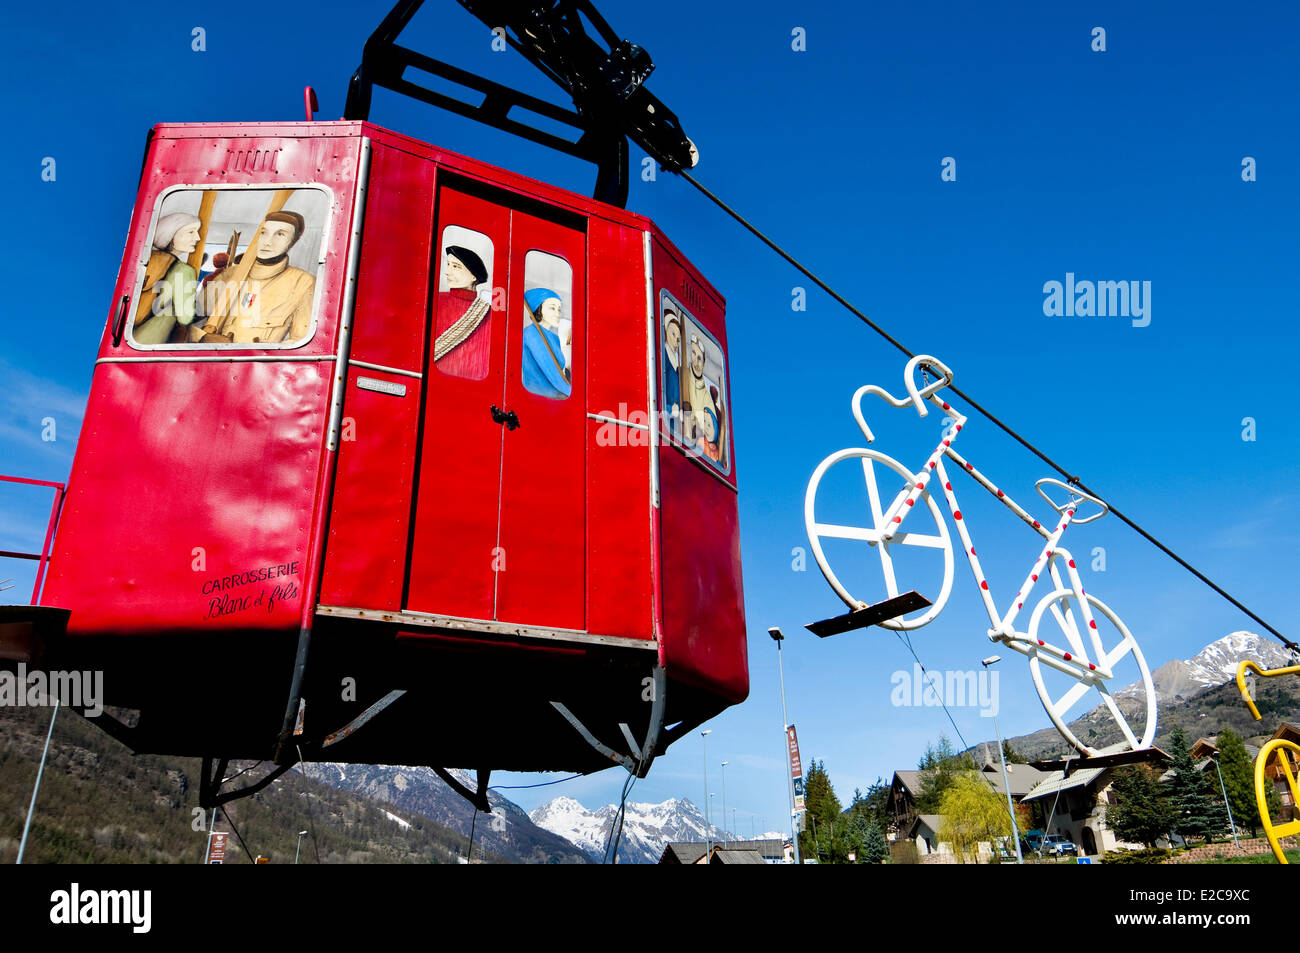 France, Hautes Alpes, Briancon, installation marking the town entrance - Stock Image